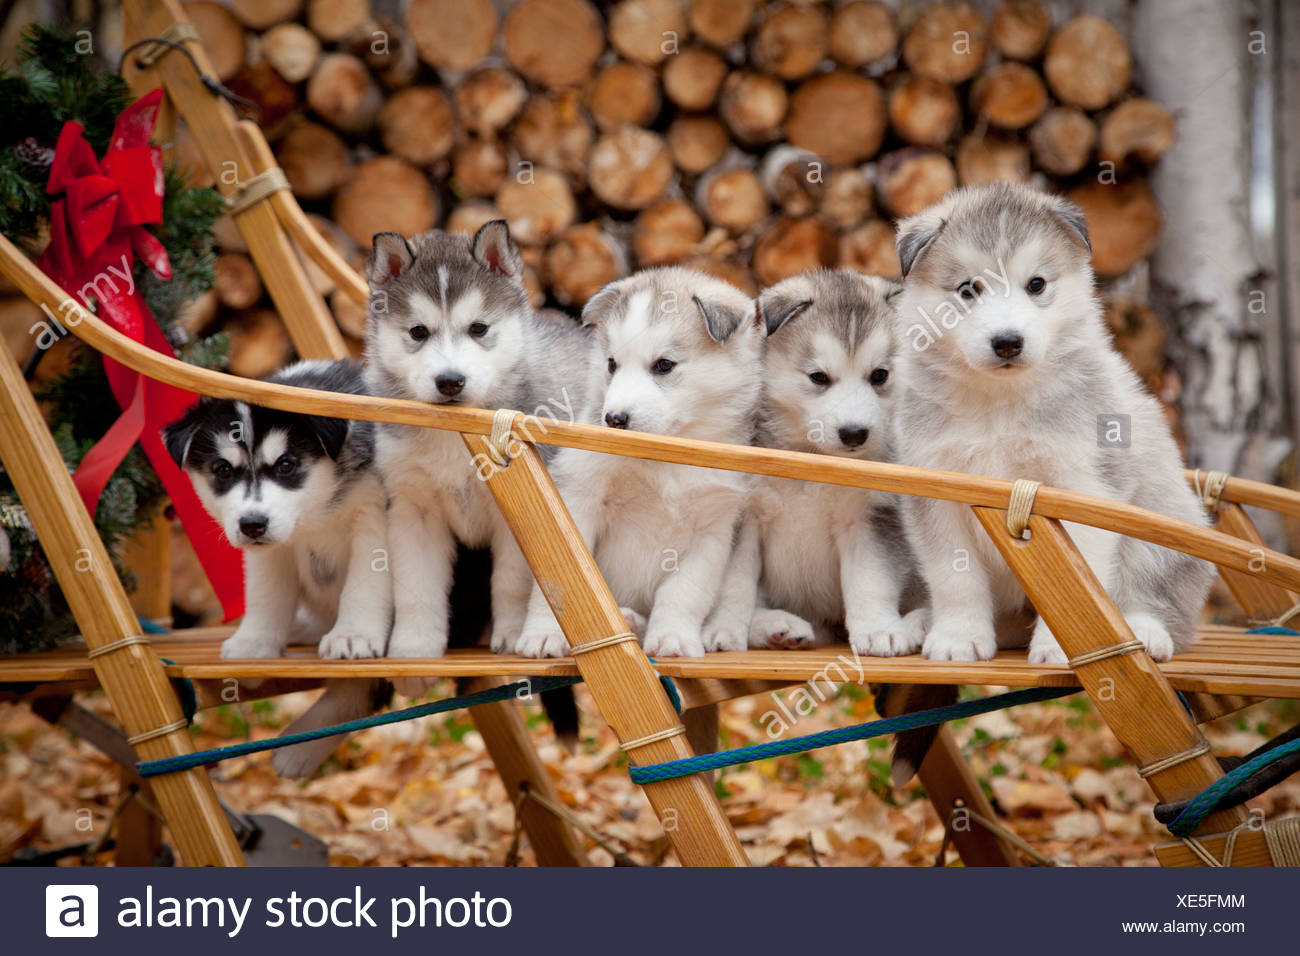 Siberian Husky puppies in traditional wooden dog sled with Christmas wreath, Alaska - Stock Image